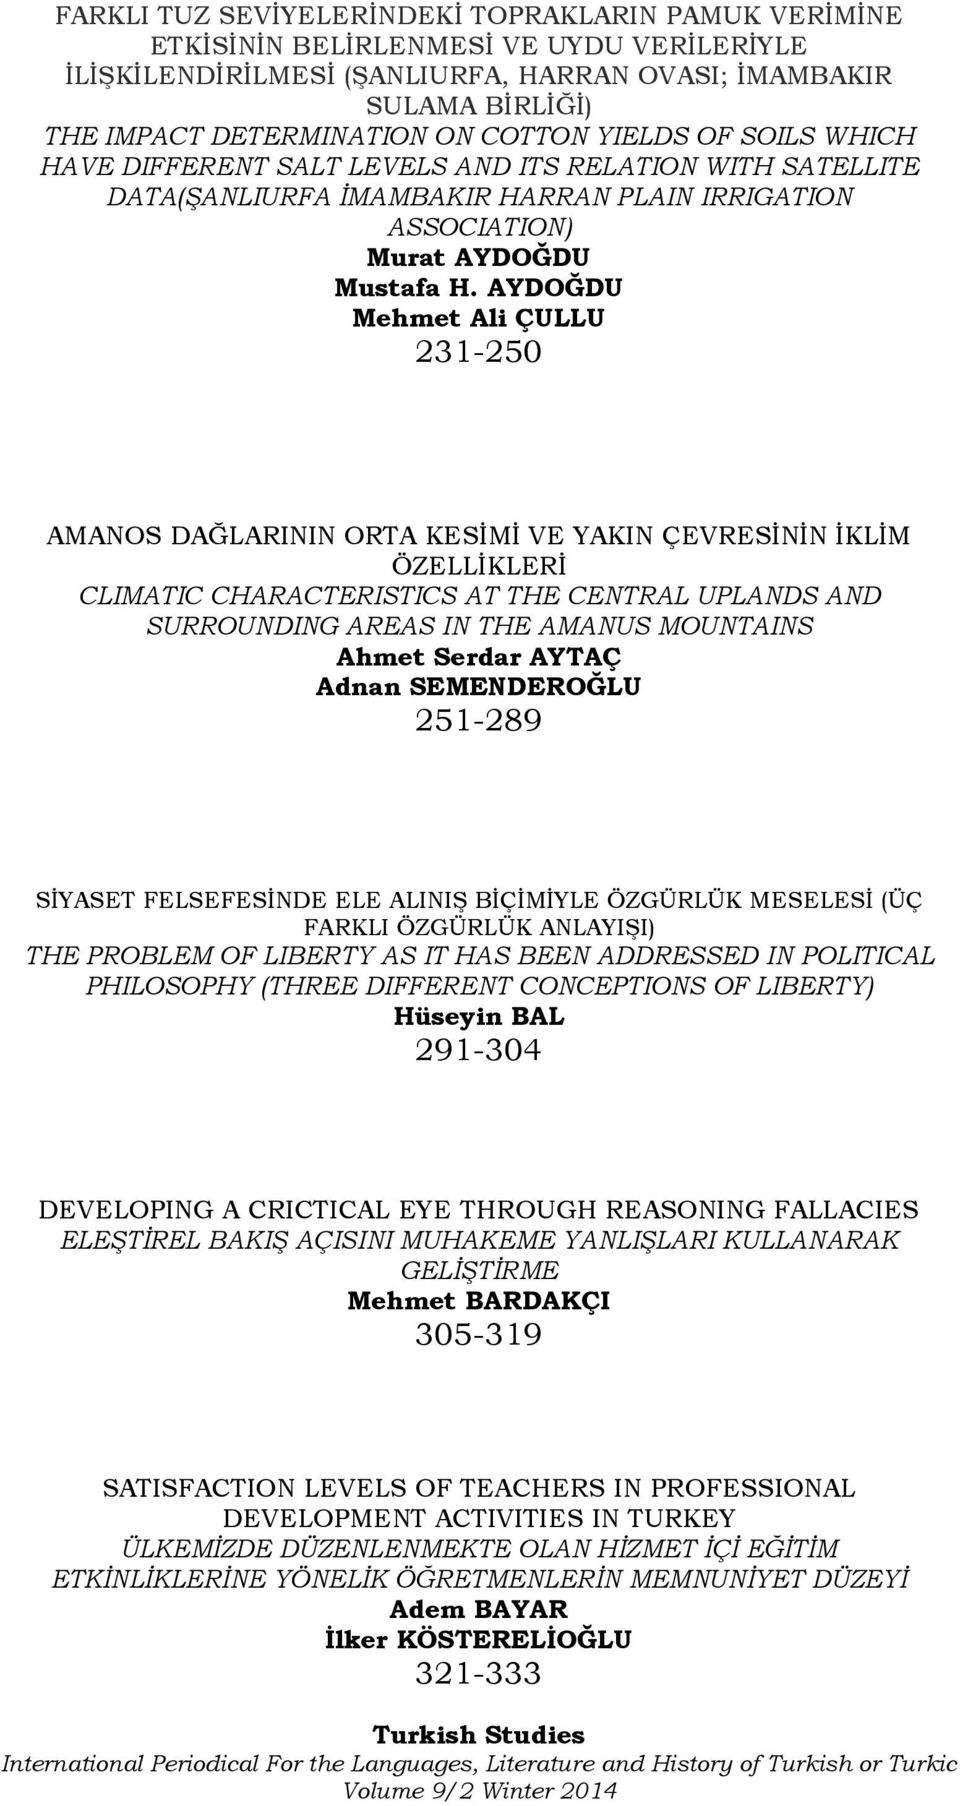 AYDOĞDU Mehmet Ali ÇULLU 231-250 AMANOS DAĞLARININ ORTA KESİMİ VE YAKIN ÇEVRESİNİN İKLİM ÖZELLİKLERİ CLIMATIC CHARACTERISTICS AT THE CENTRAL UPLANDS AND SURROUNDING AREAS IN THE AMANUS MOUNTAINS